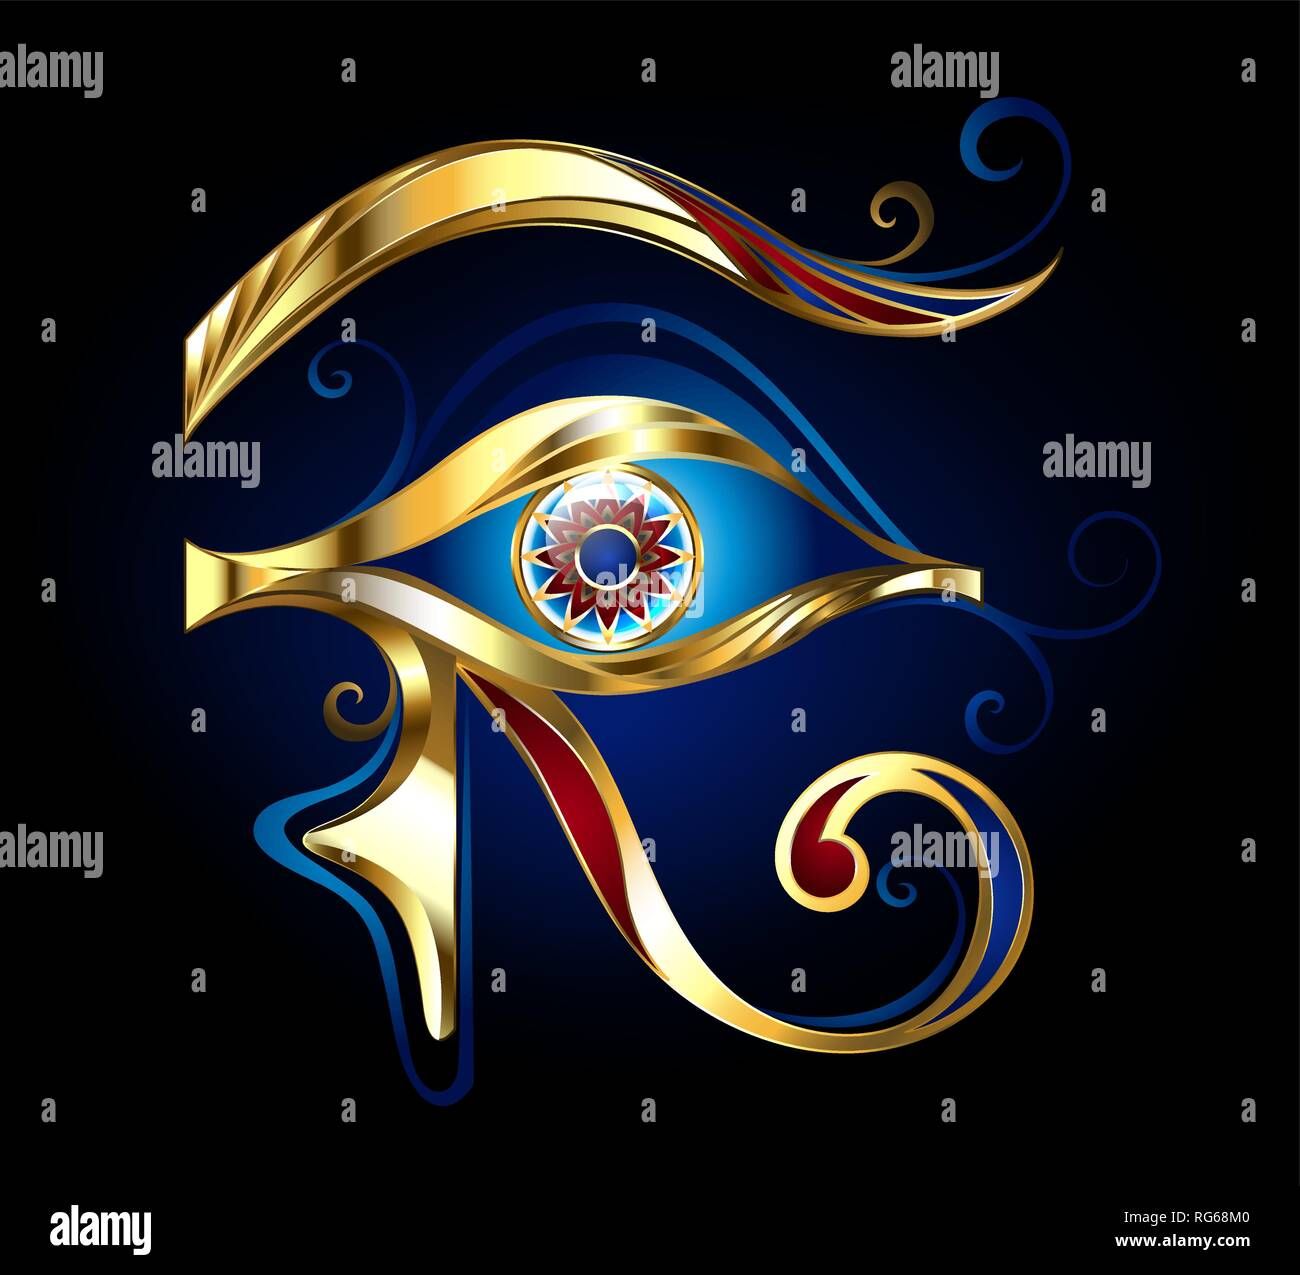 Amulet Eye of Horus of glittering gold, decorated with red and blue enamel on dark blue background. - Stock Vector